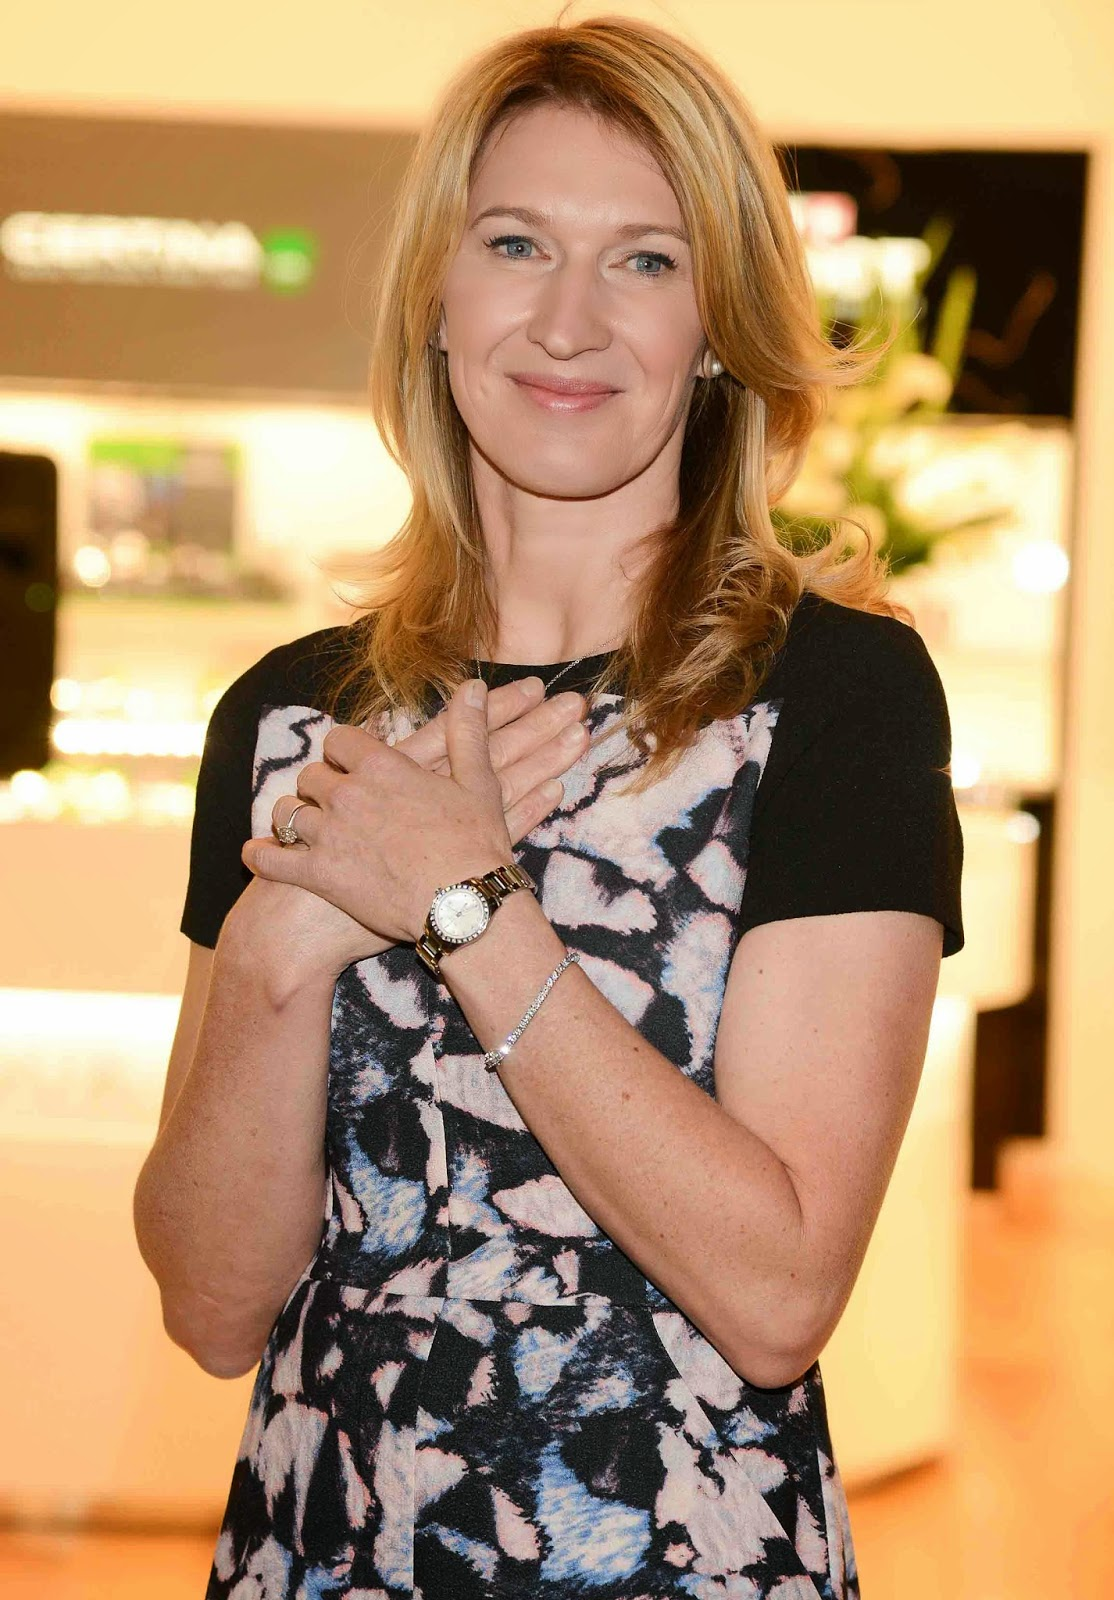 Images Steffi Graf Good times square gossip: steffi graf at vegas hour passion boutique